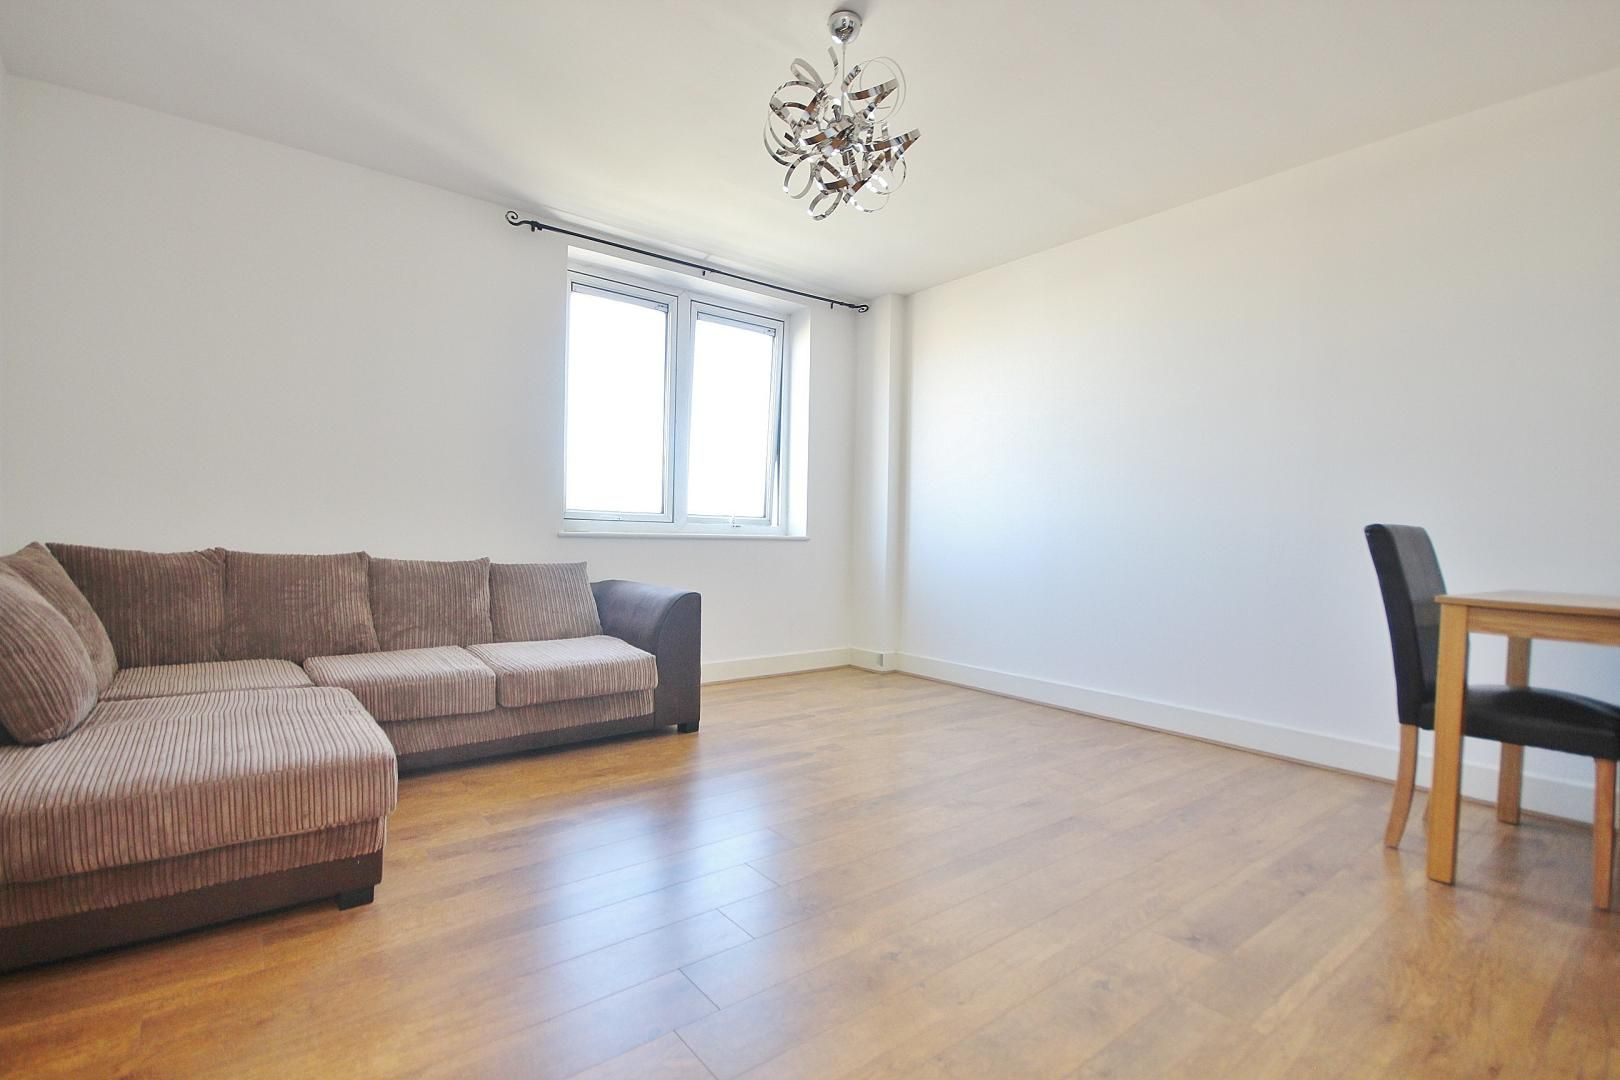 1 bed flat to rent in Skyline Plaza, E1